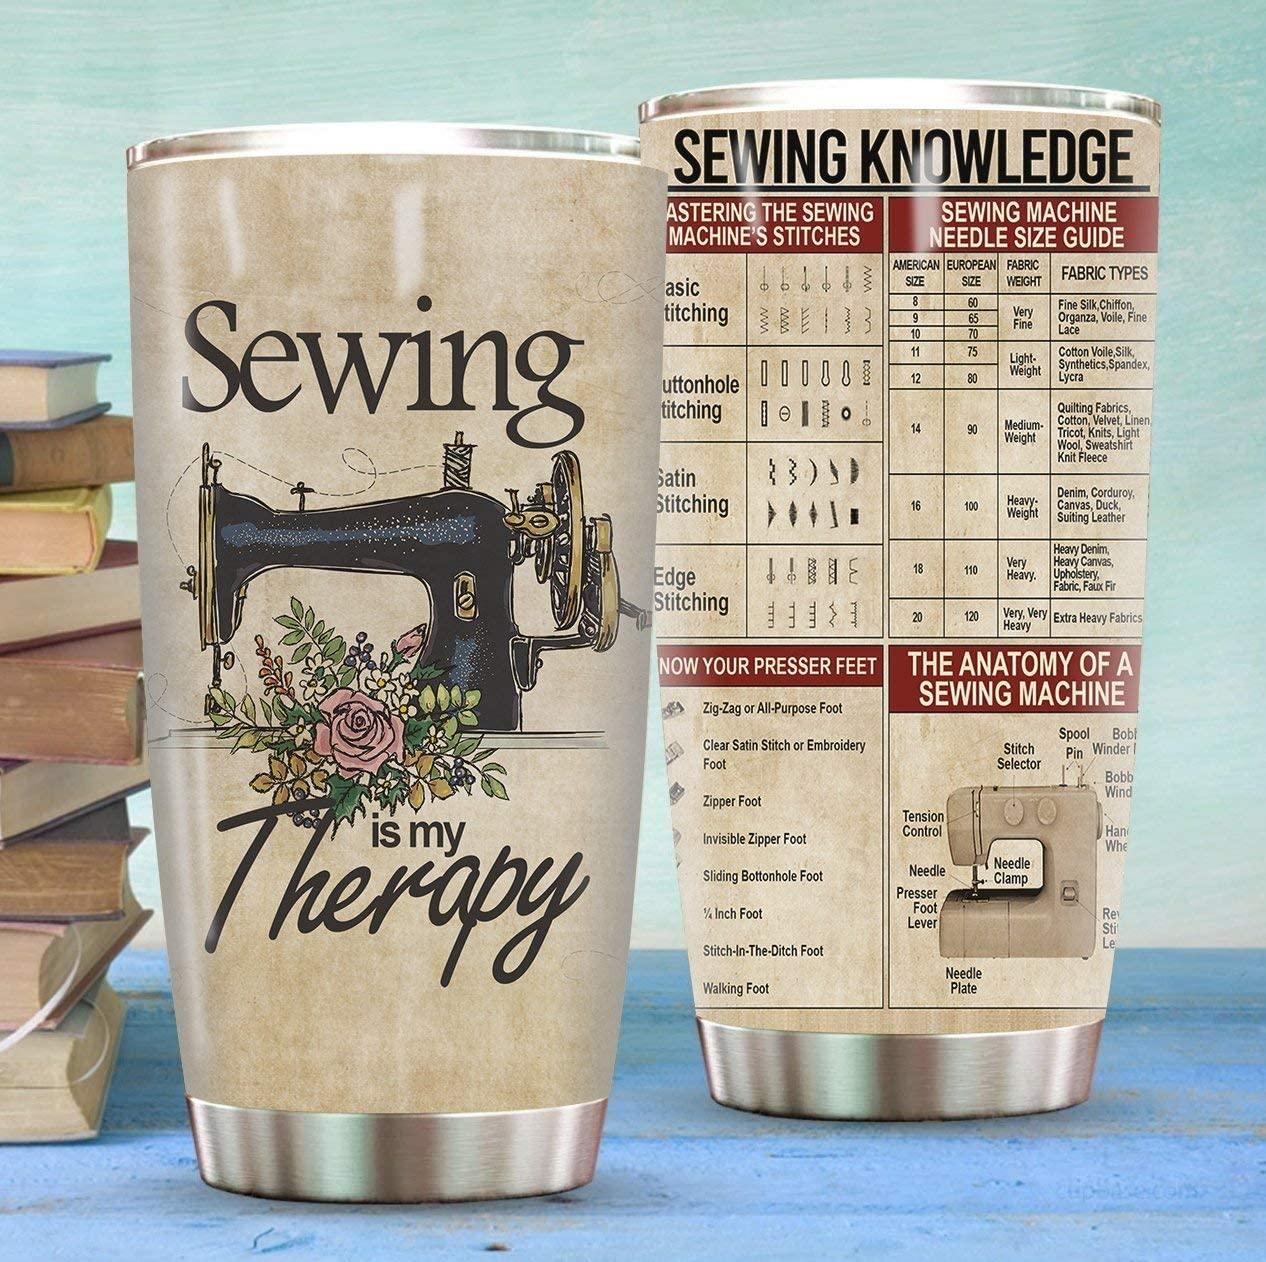 Japan Maker New Sewing Knowledge Tumblers Great interest Is My Therapy Sewer Gif Vintage